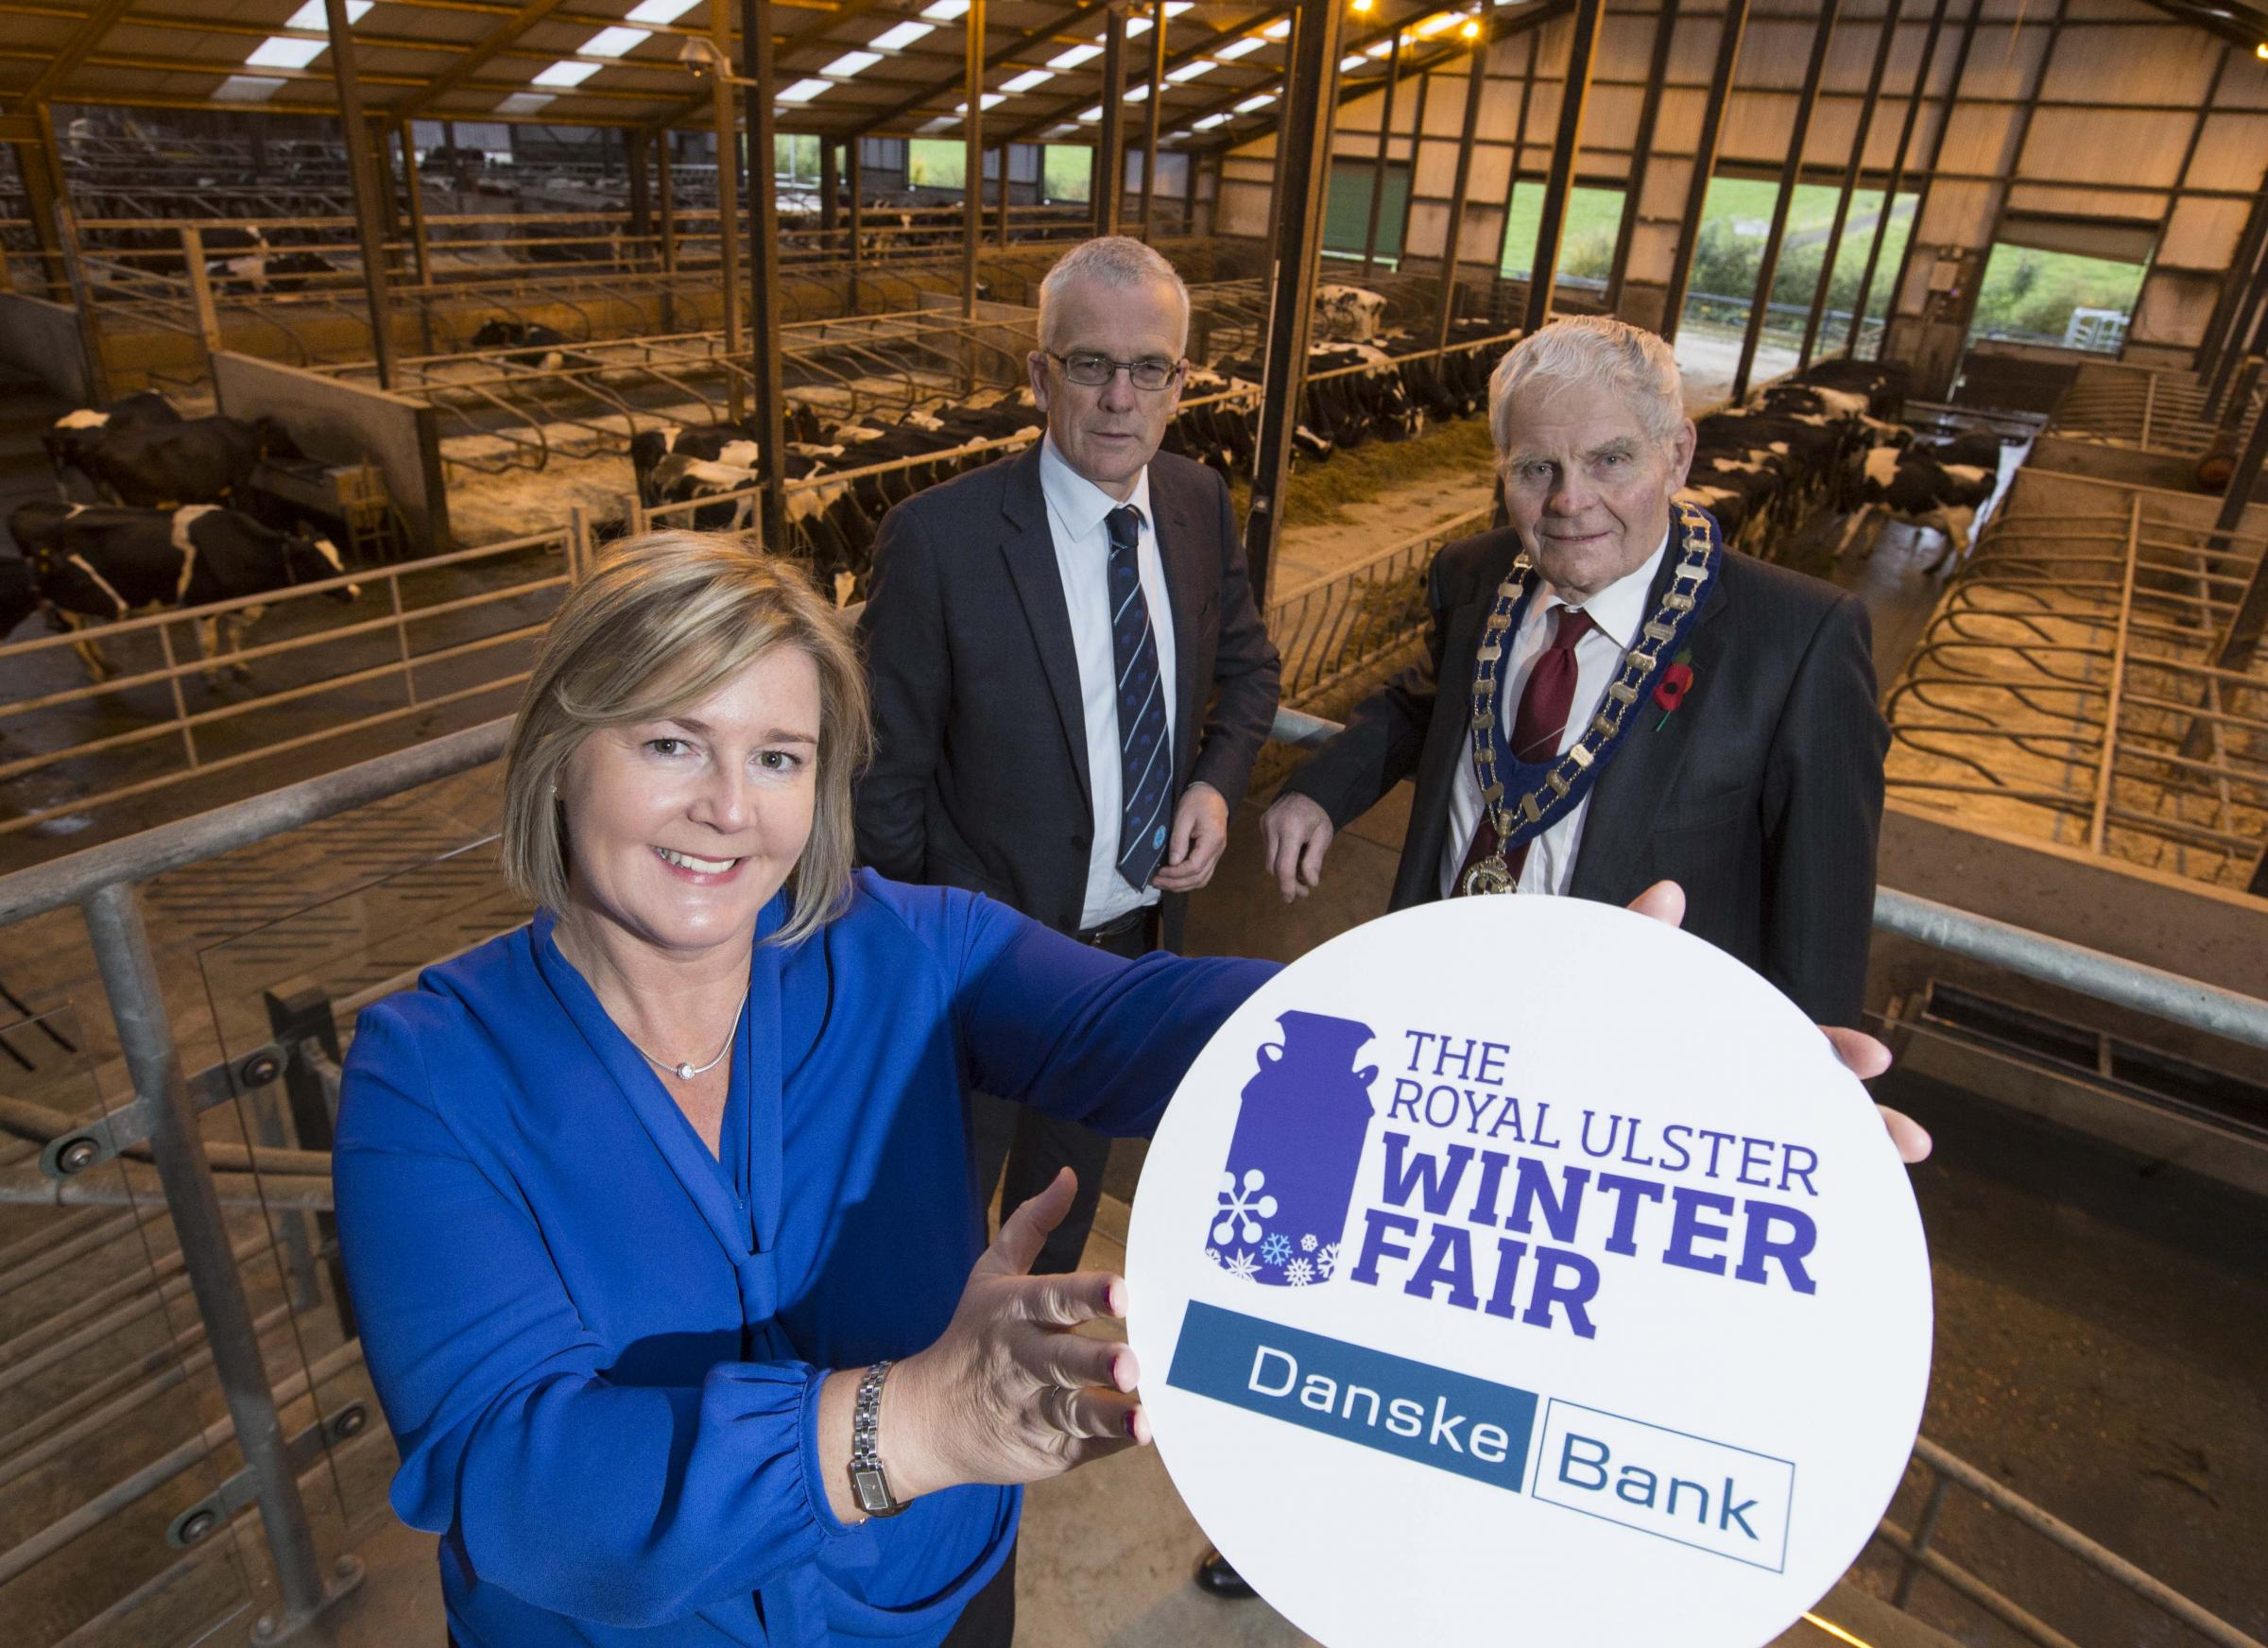 RUAS President, Billy Robson with Rhonda Geary of the RUAS and John Henning, Danske Bank at the launch of the 31st Royal Ulster Winter Fair.